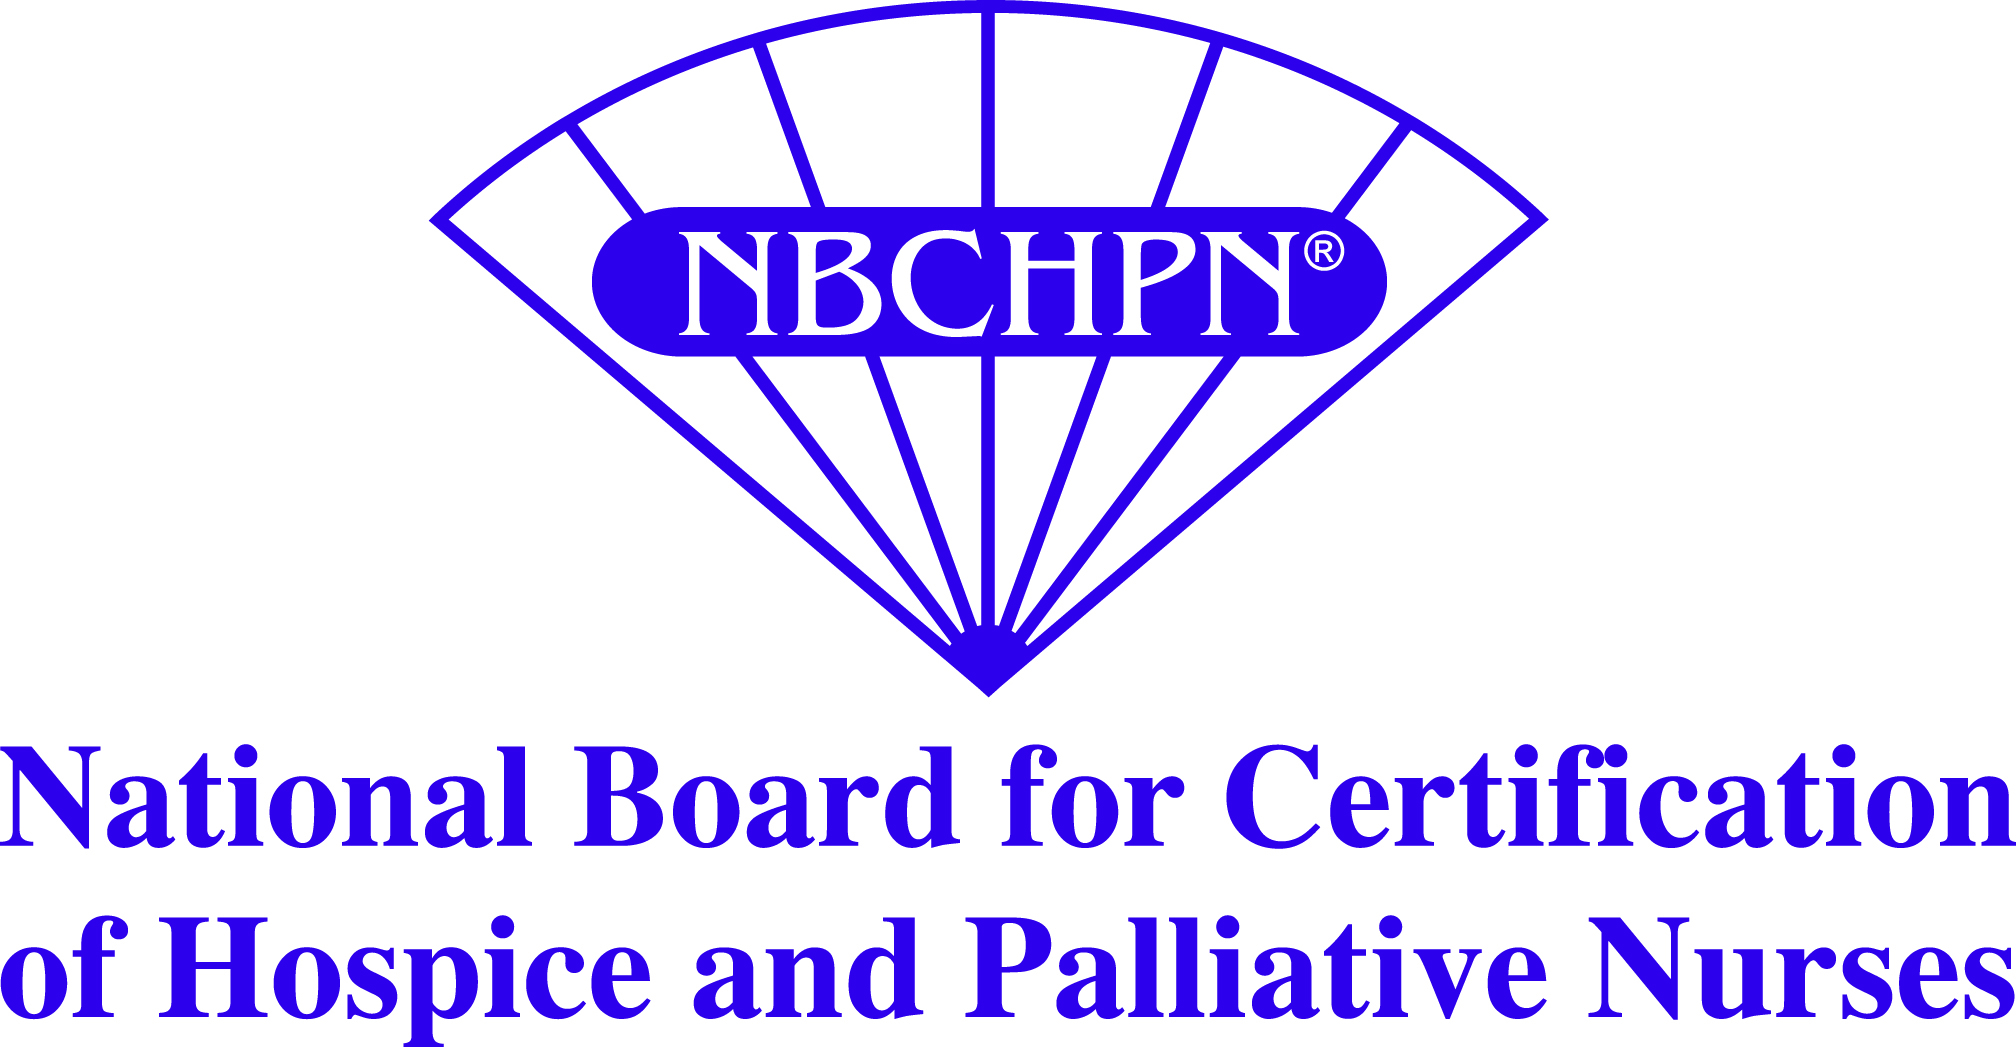 NBCHPN Home Health Care member